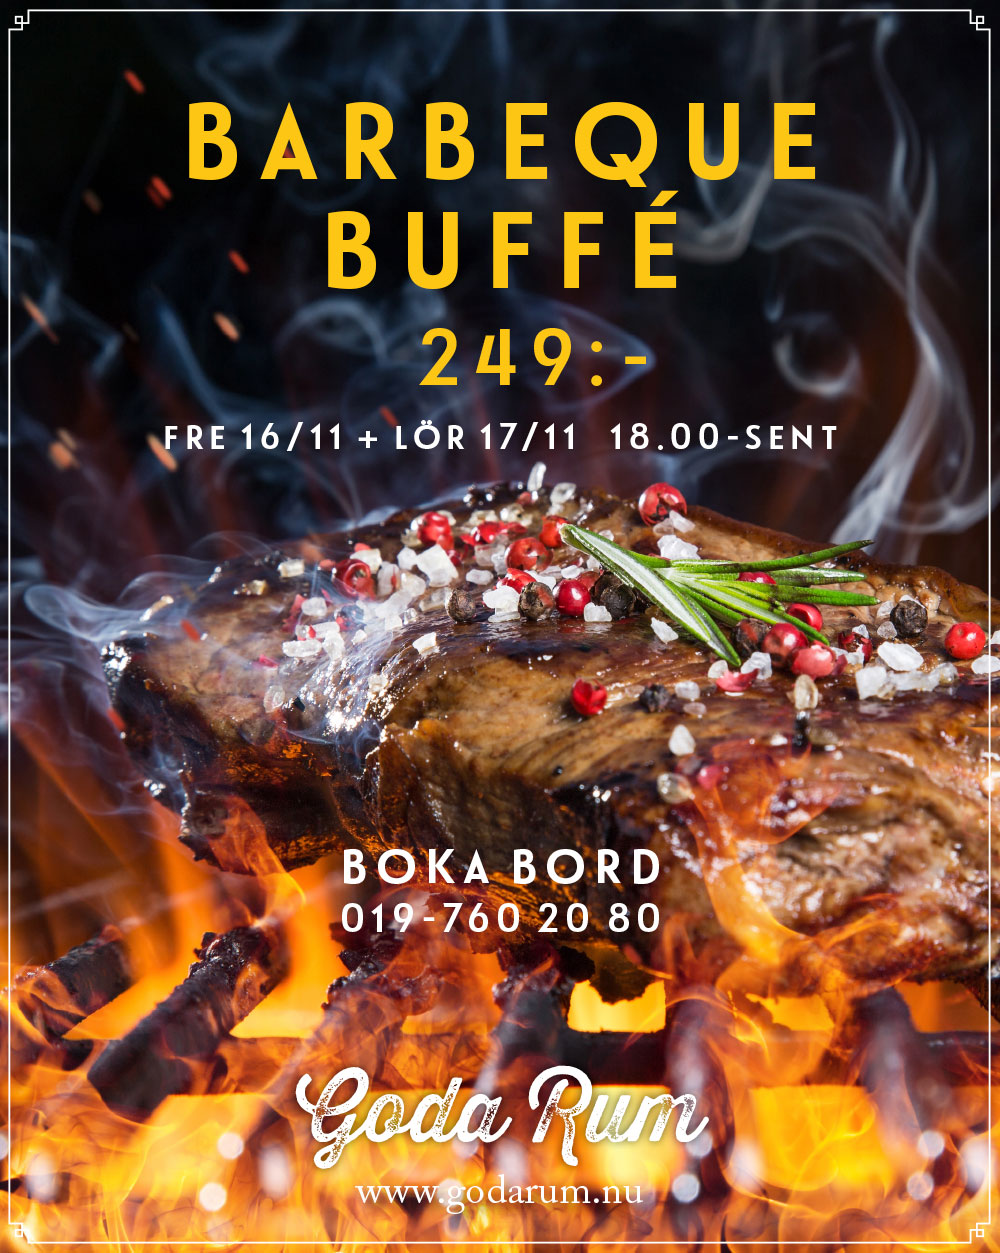 Barbeque_webb